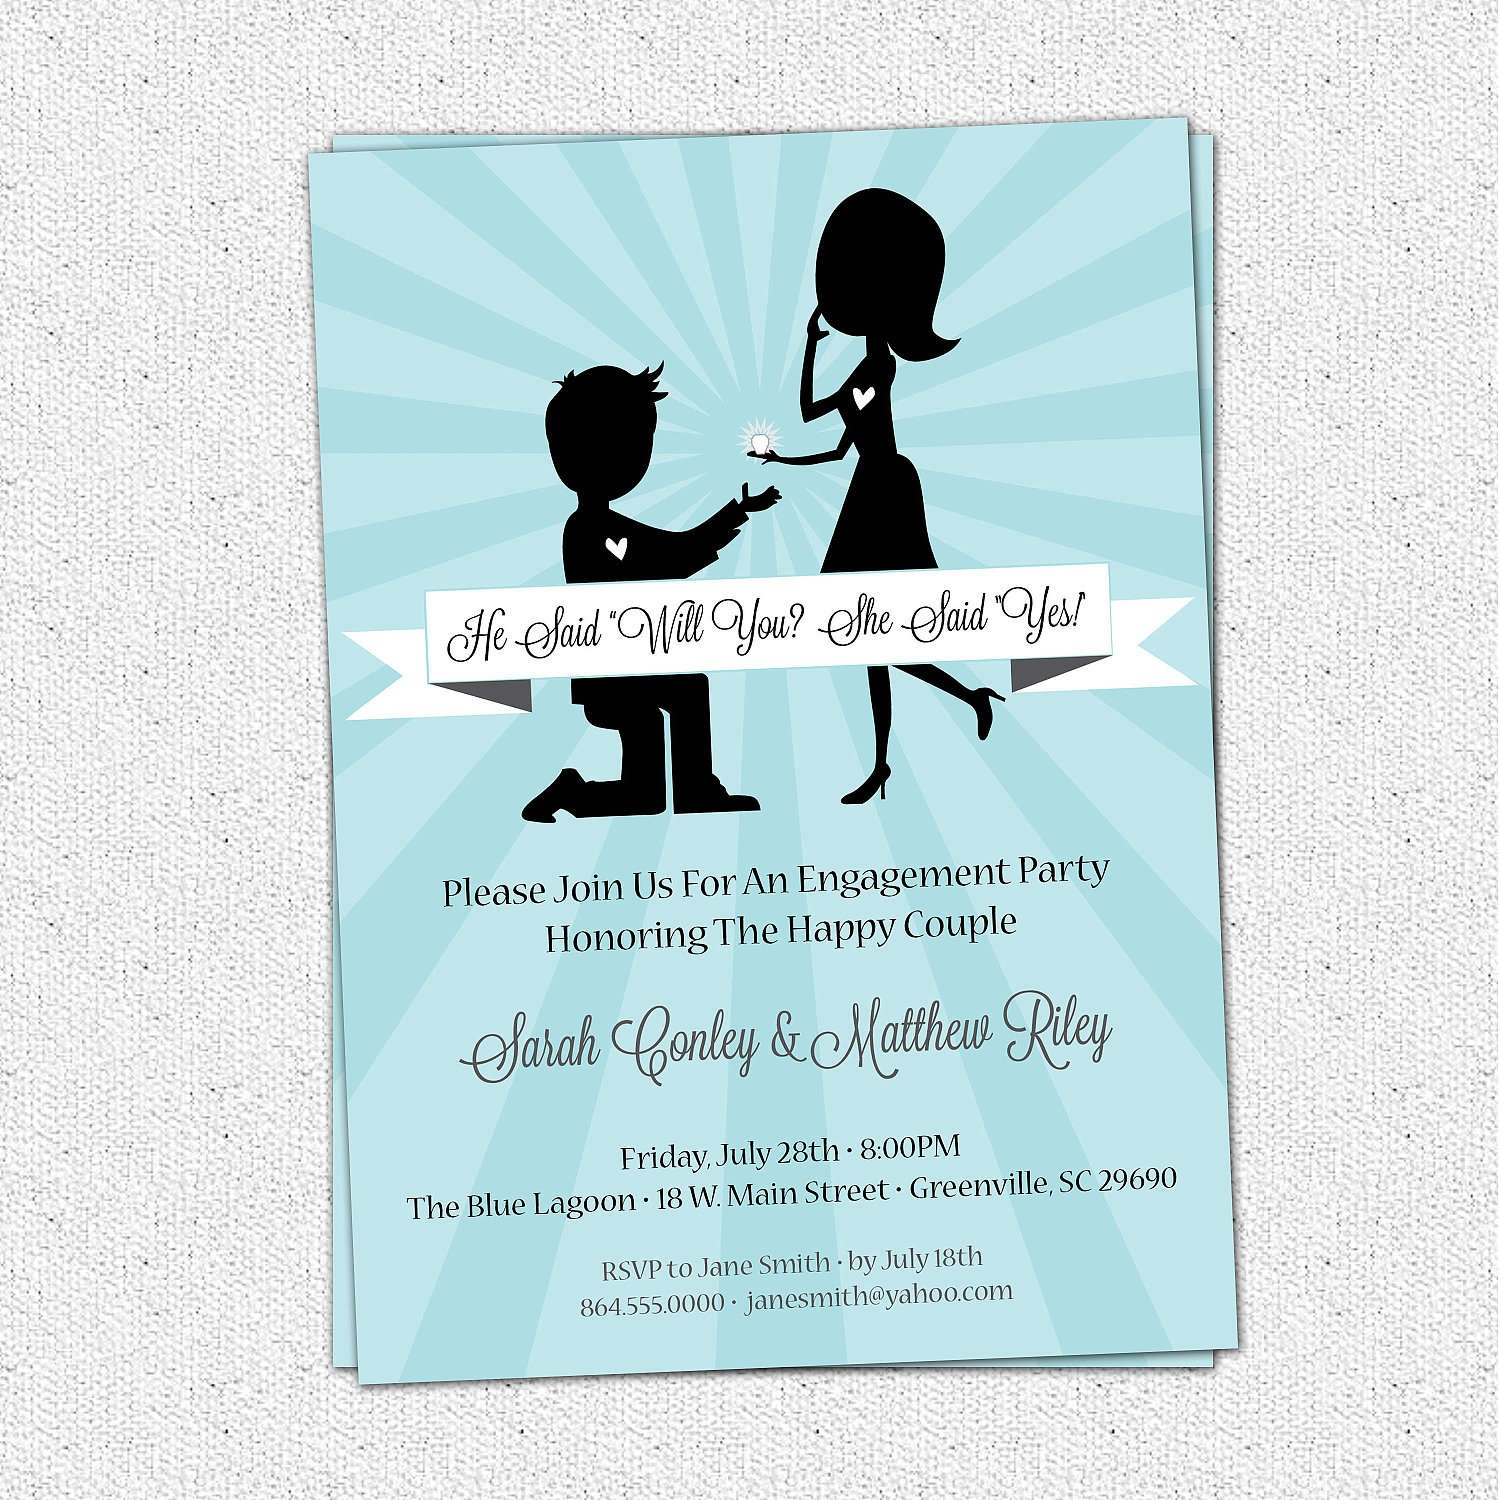 010 Engagement Party Invitations Templates Stunning Cloveranddot - Free Printable Engagement Party Invitations